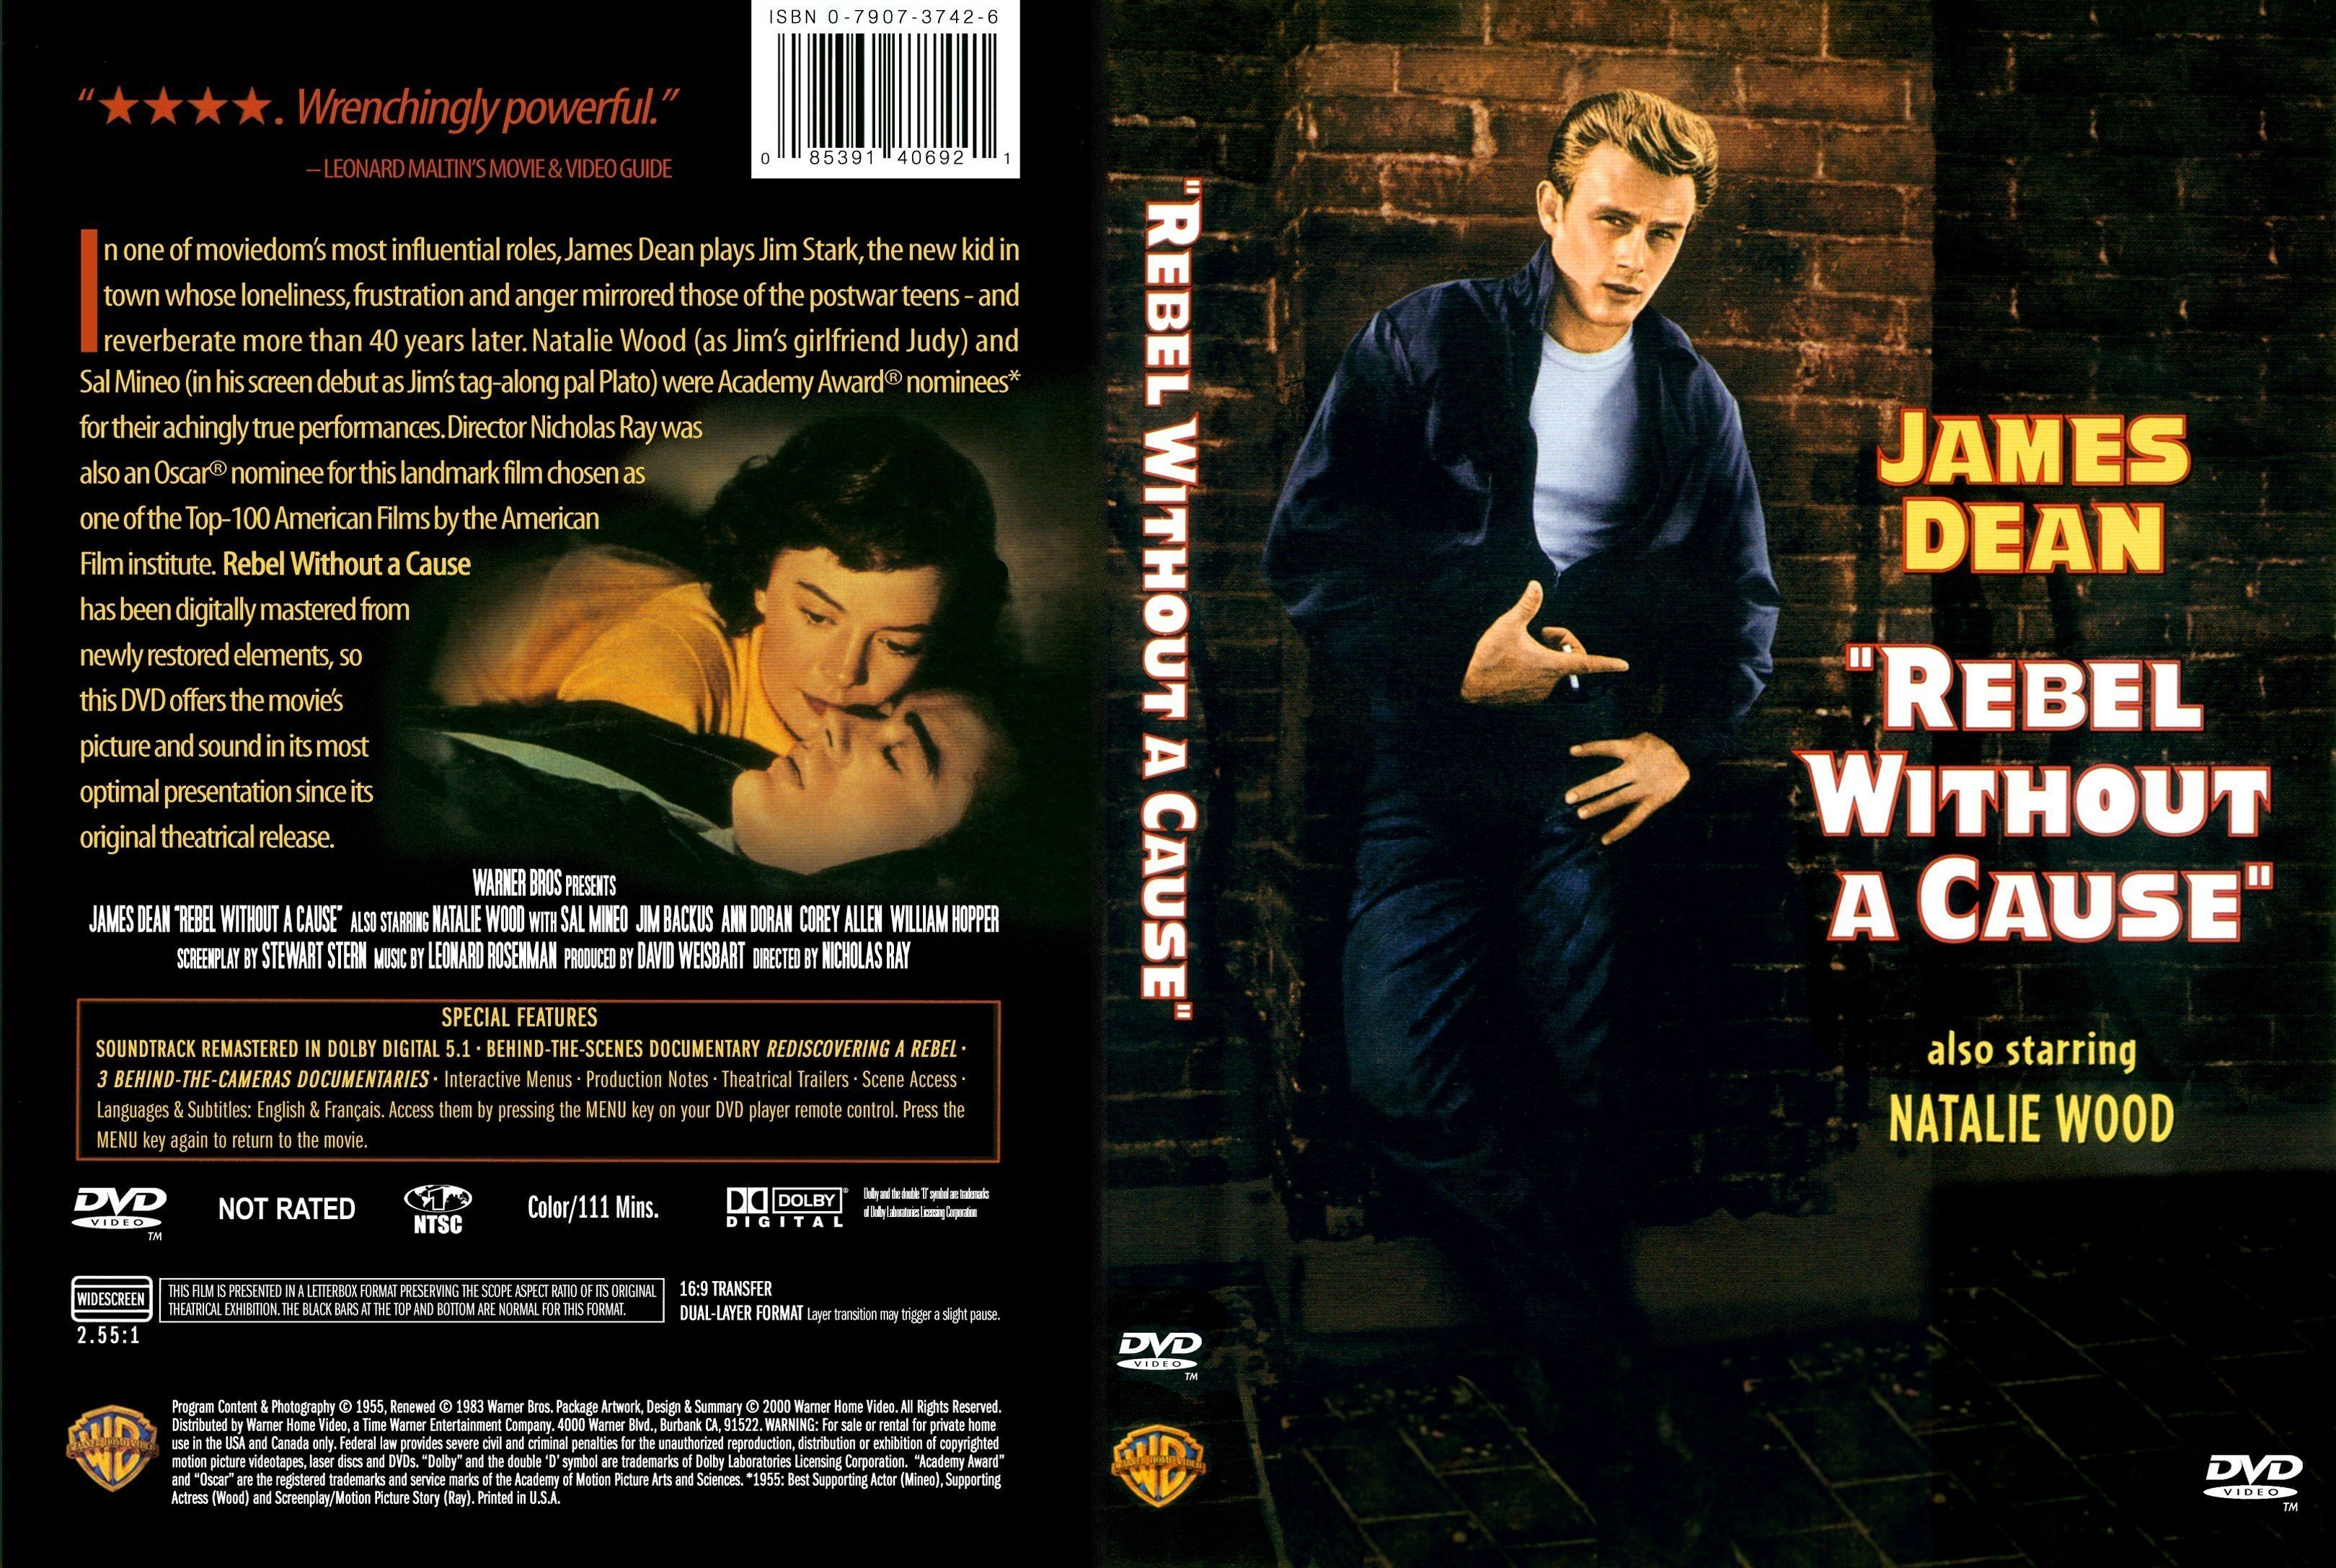 rebel without a cause essays 1950s movie essay: rebel without a cause introduction rebel without a cause is a very popular film from 1955 it depicts life in the 1950's from the viewpoint of three.